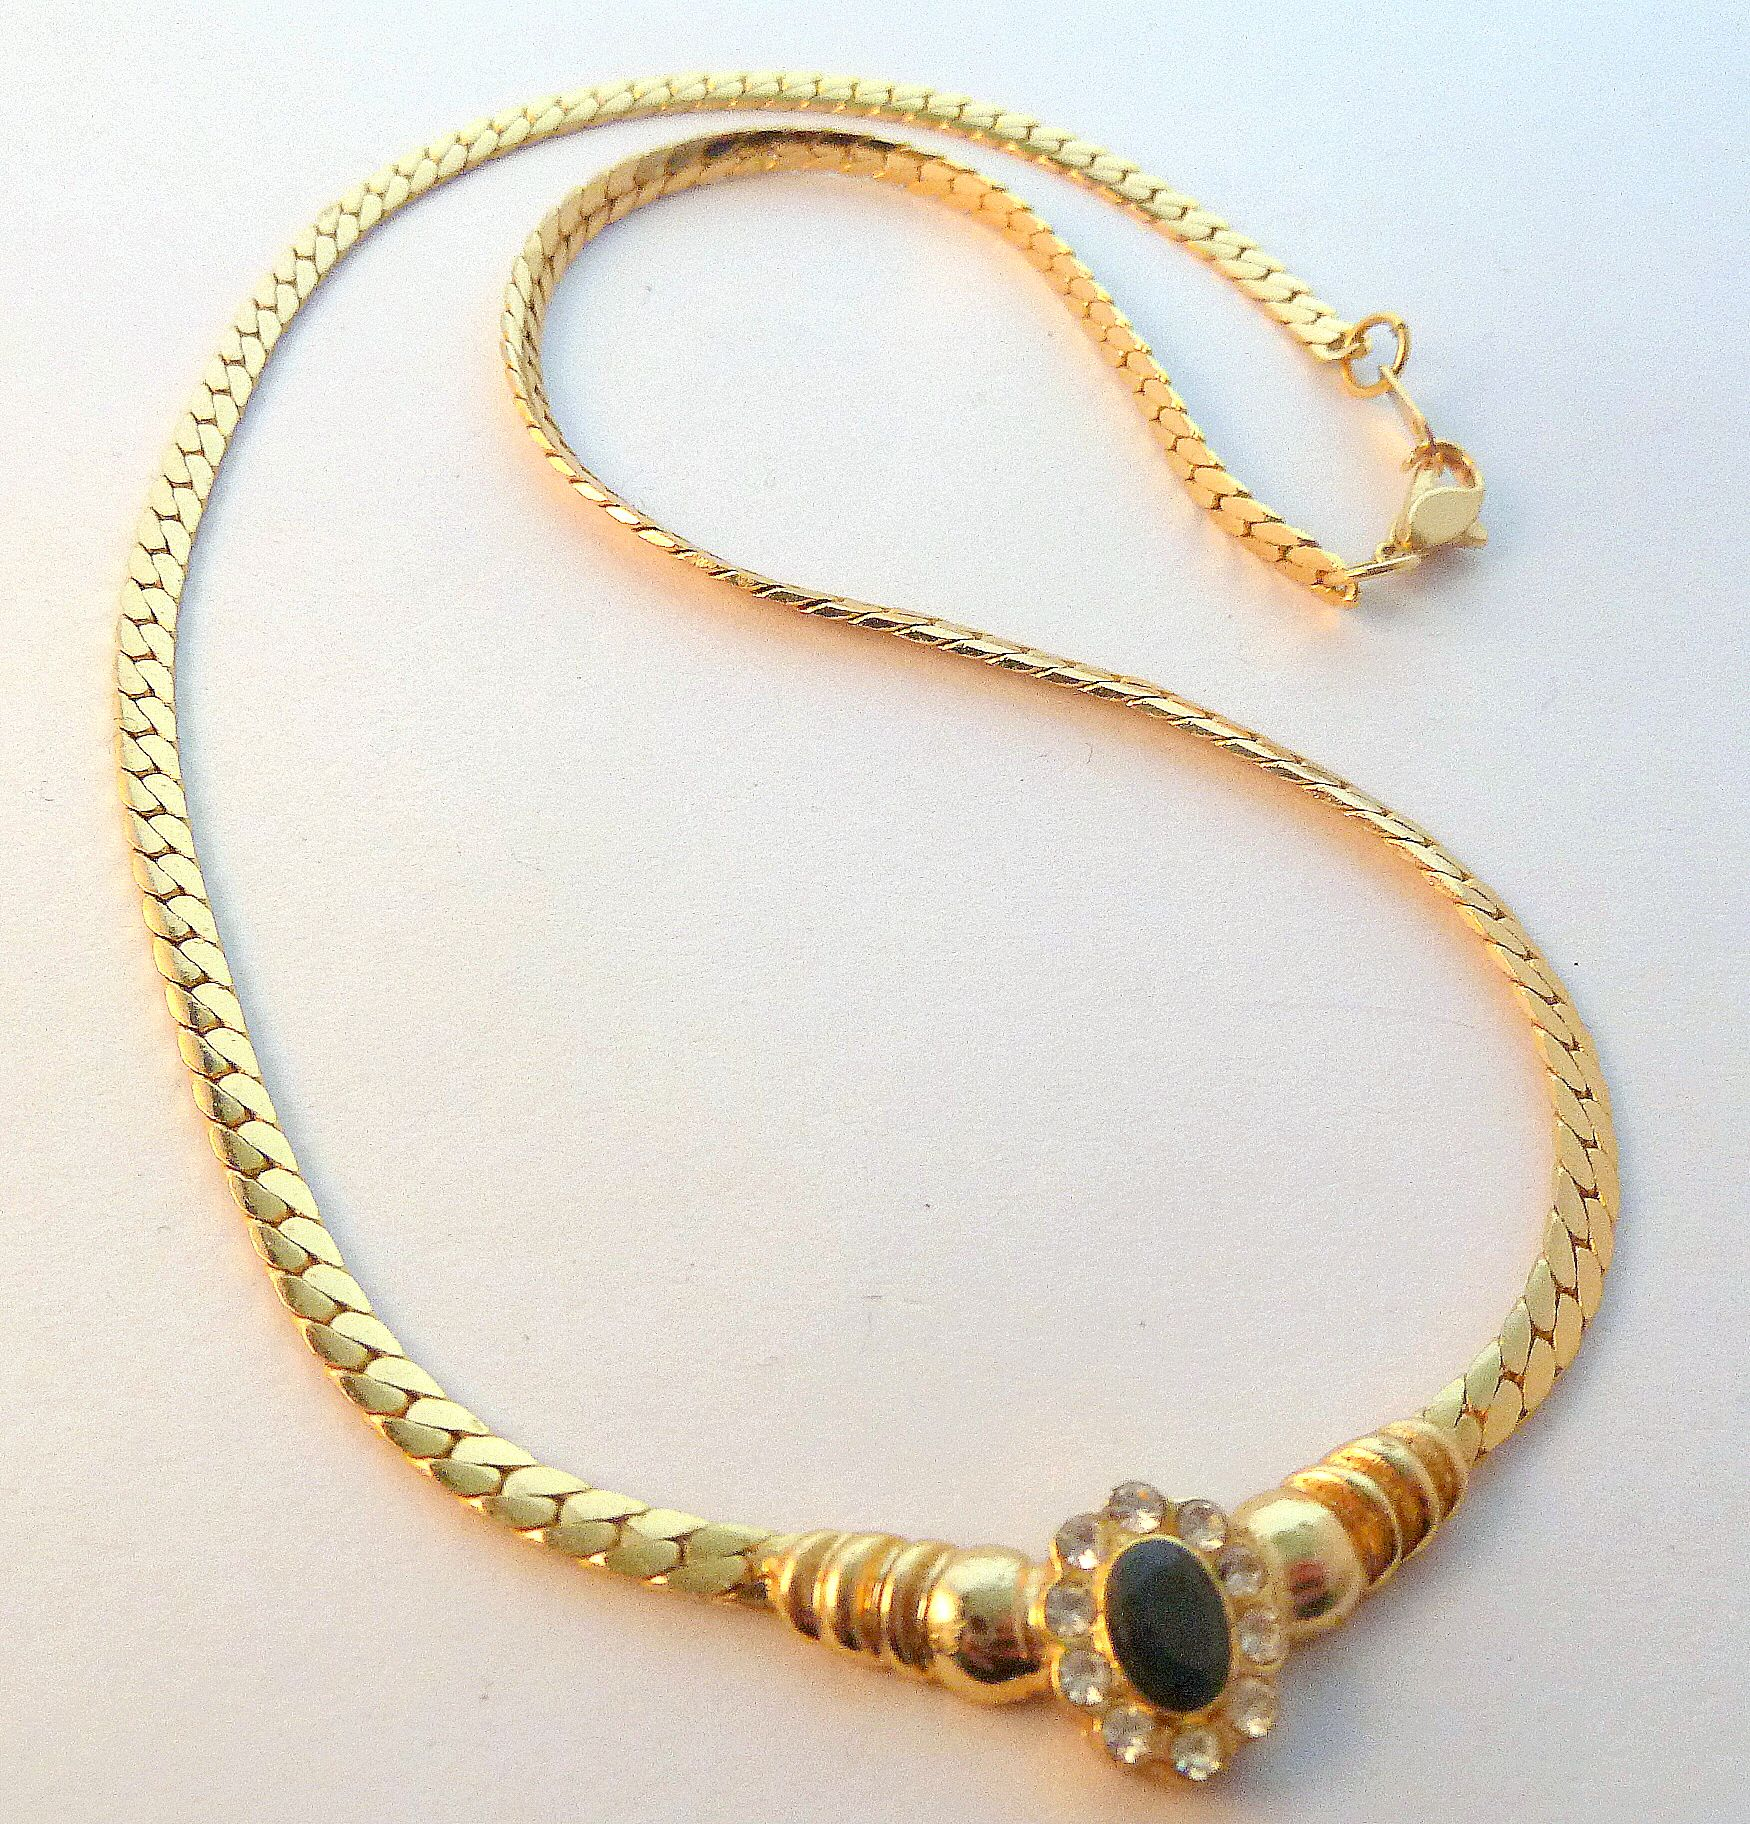 chain heritage jewelry and yellow inch trio pendant roth necklace thomas jewellery gold slide peter reed ribbon signature romance circle in mini adjustable